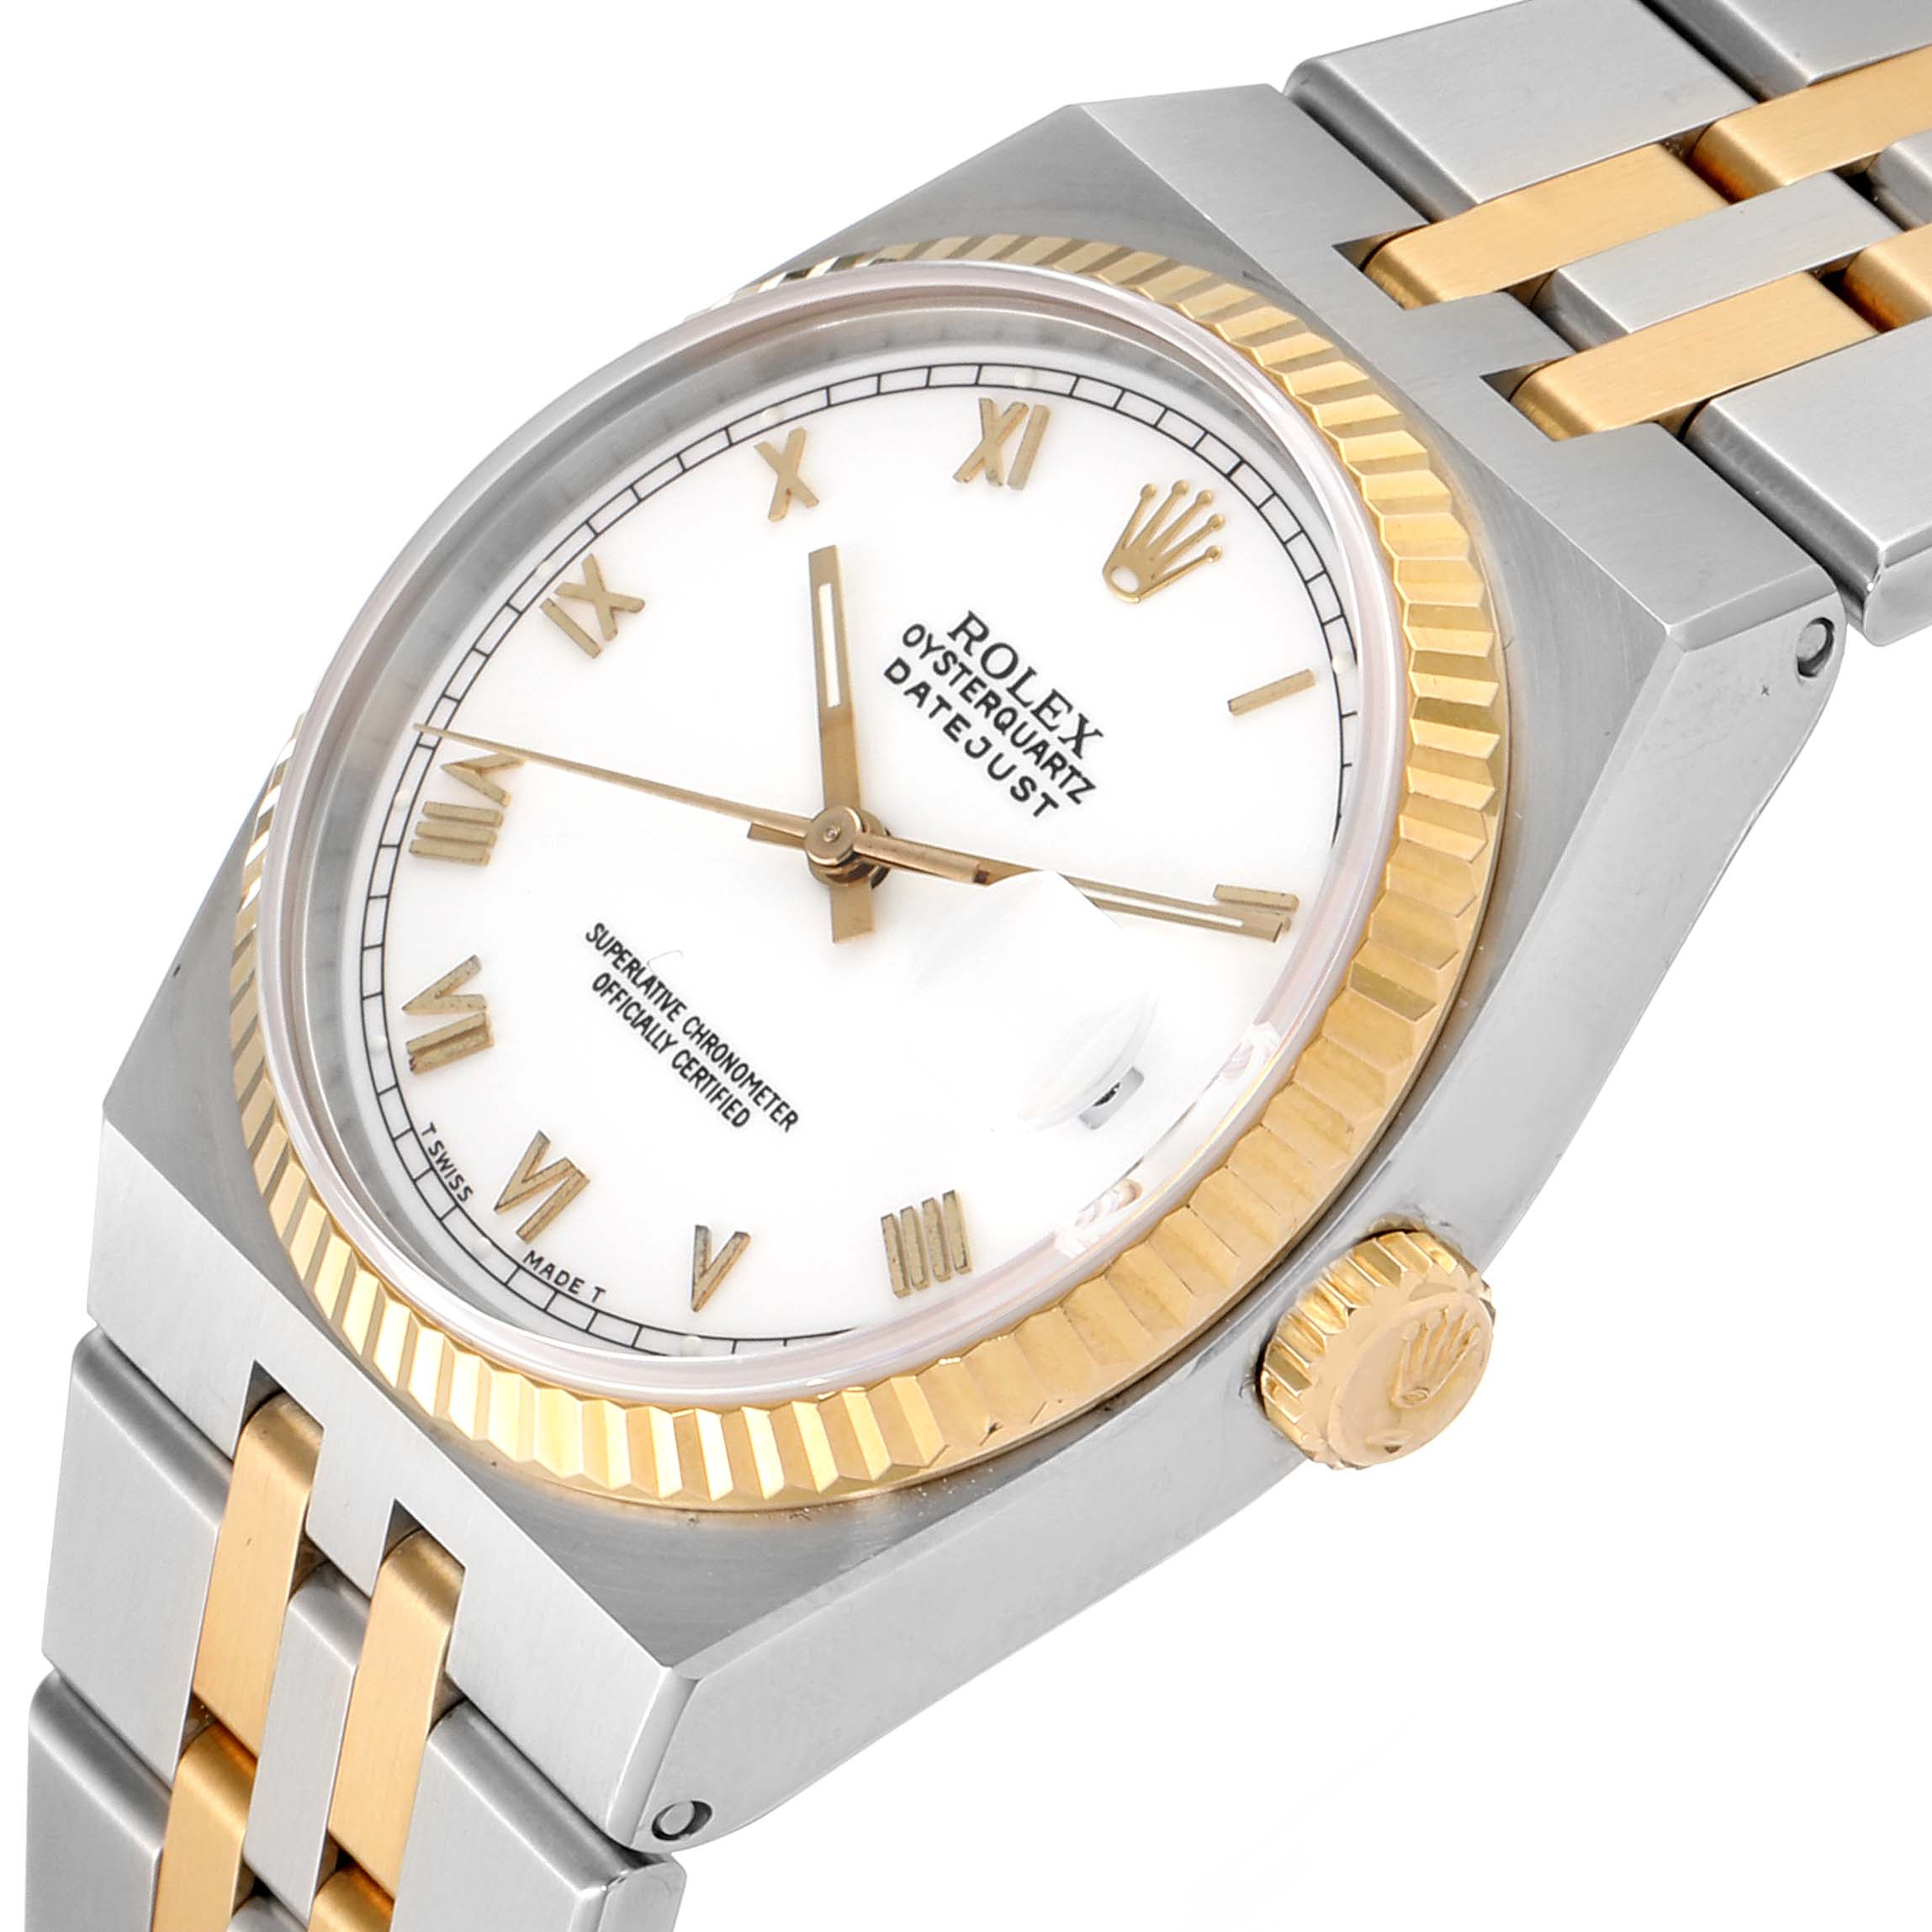 Rolex Oysterquartz Datejust Steel Yellow Gold White Dial Watch 17013 Box SwissWatchExpo